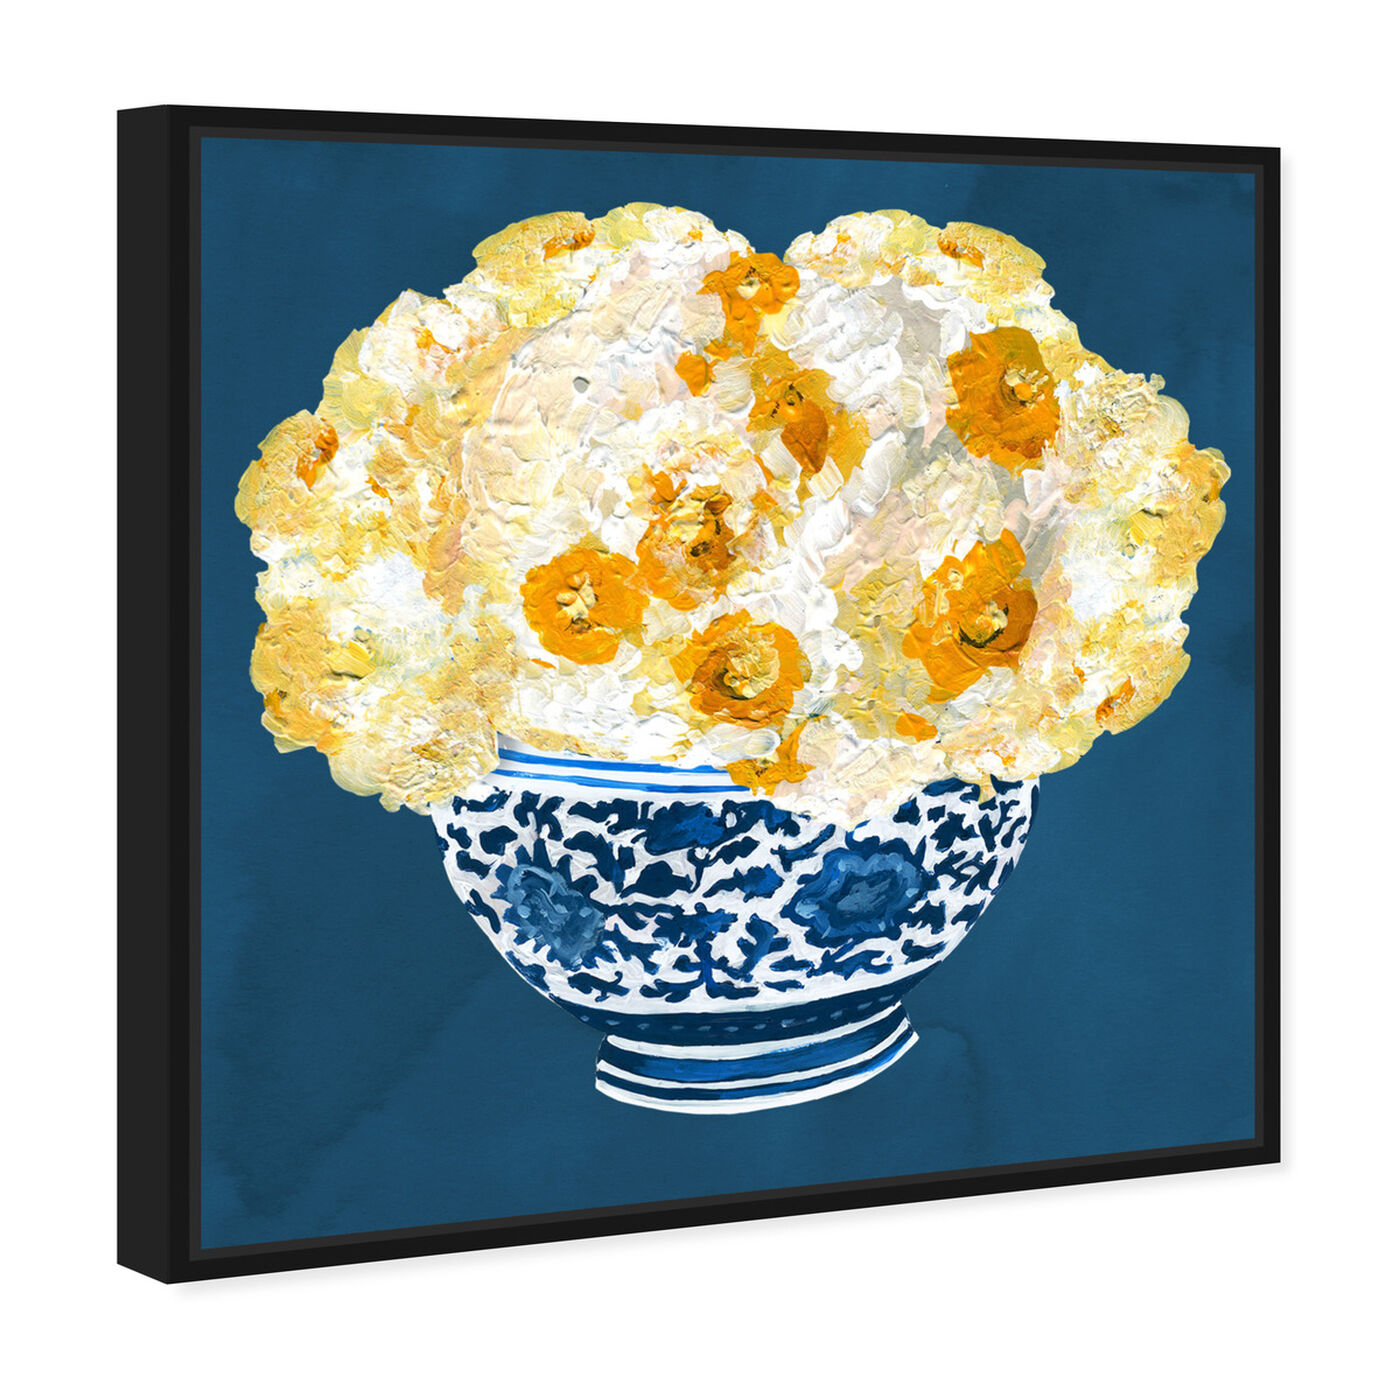 Angled view of Blue and Yellow Vase featuring floral and botanical and florals art.